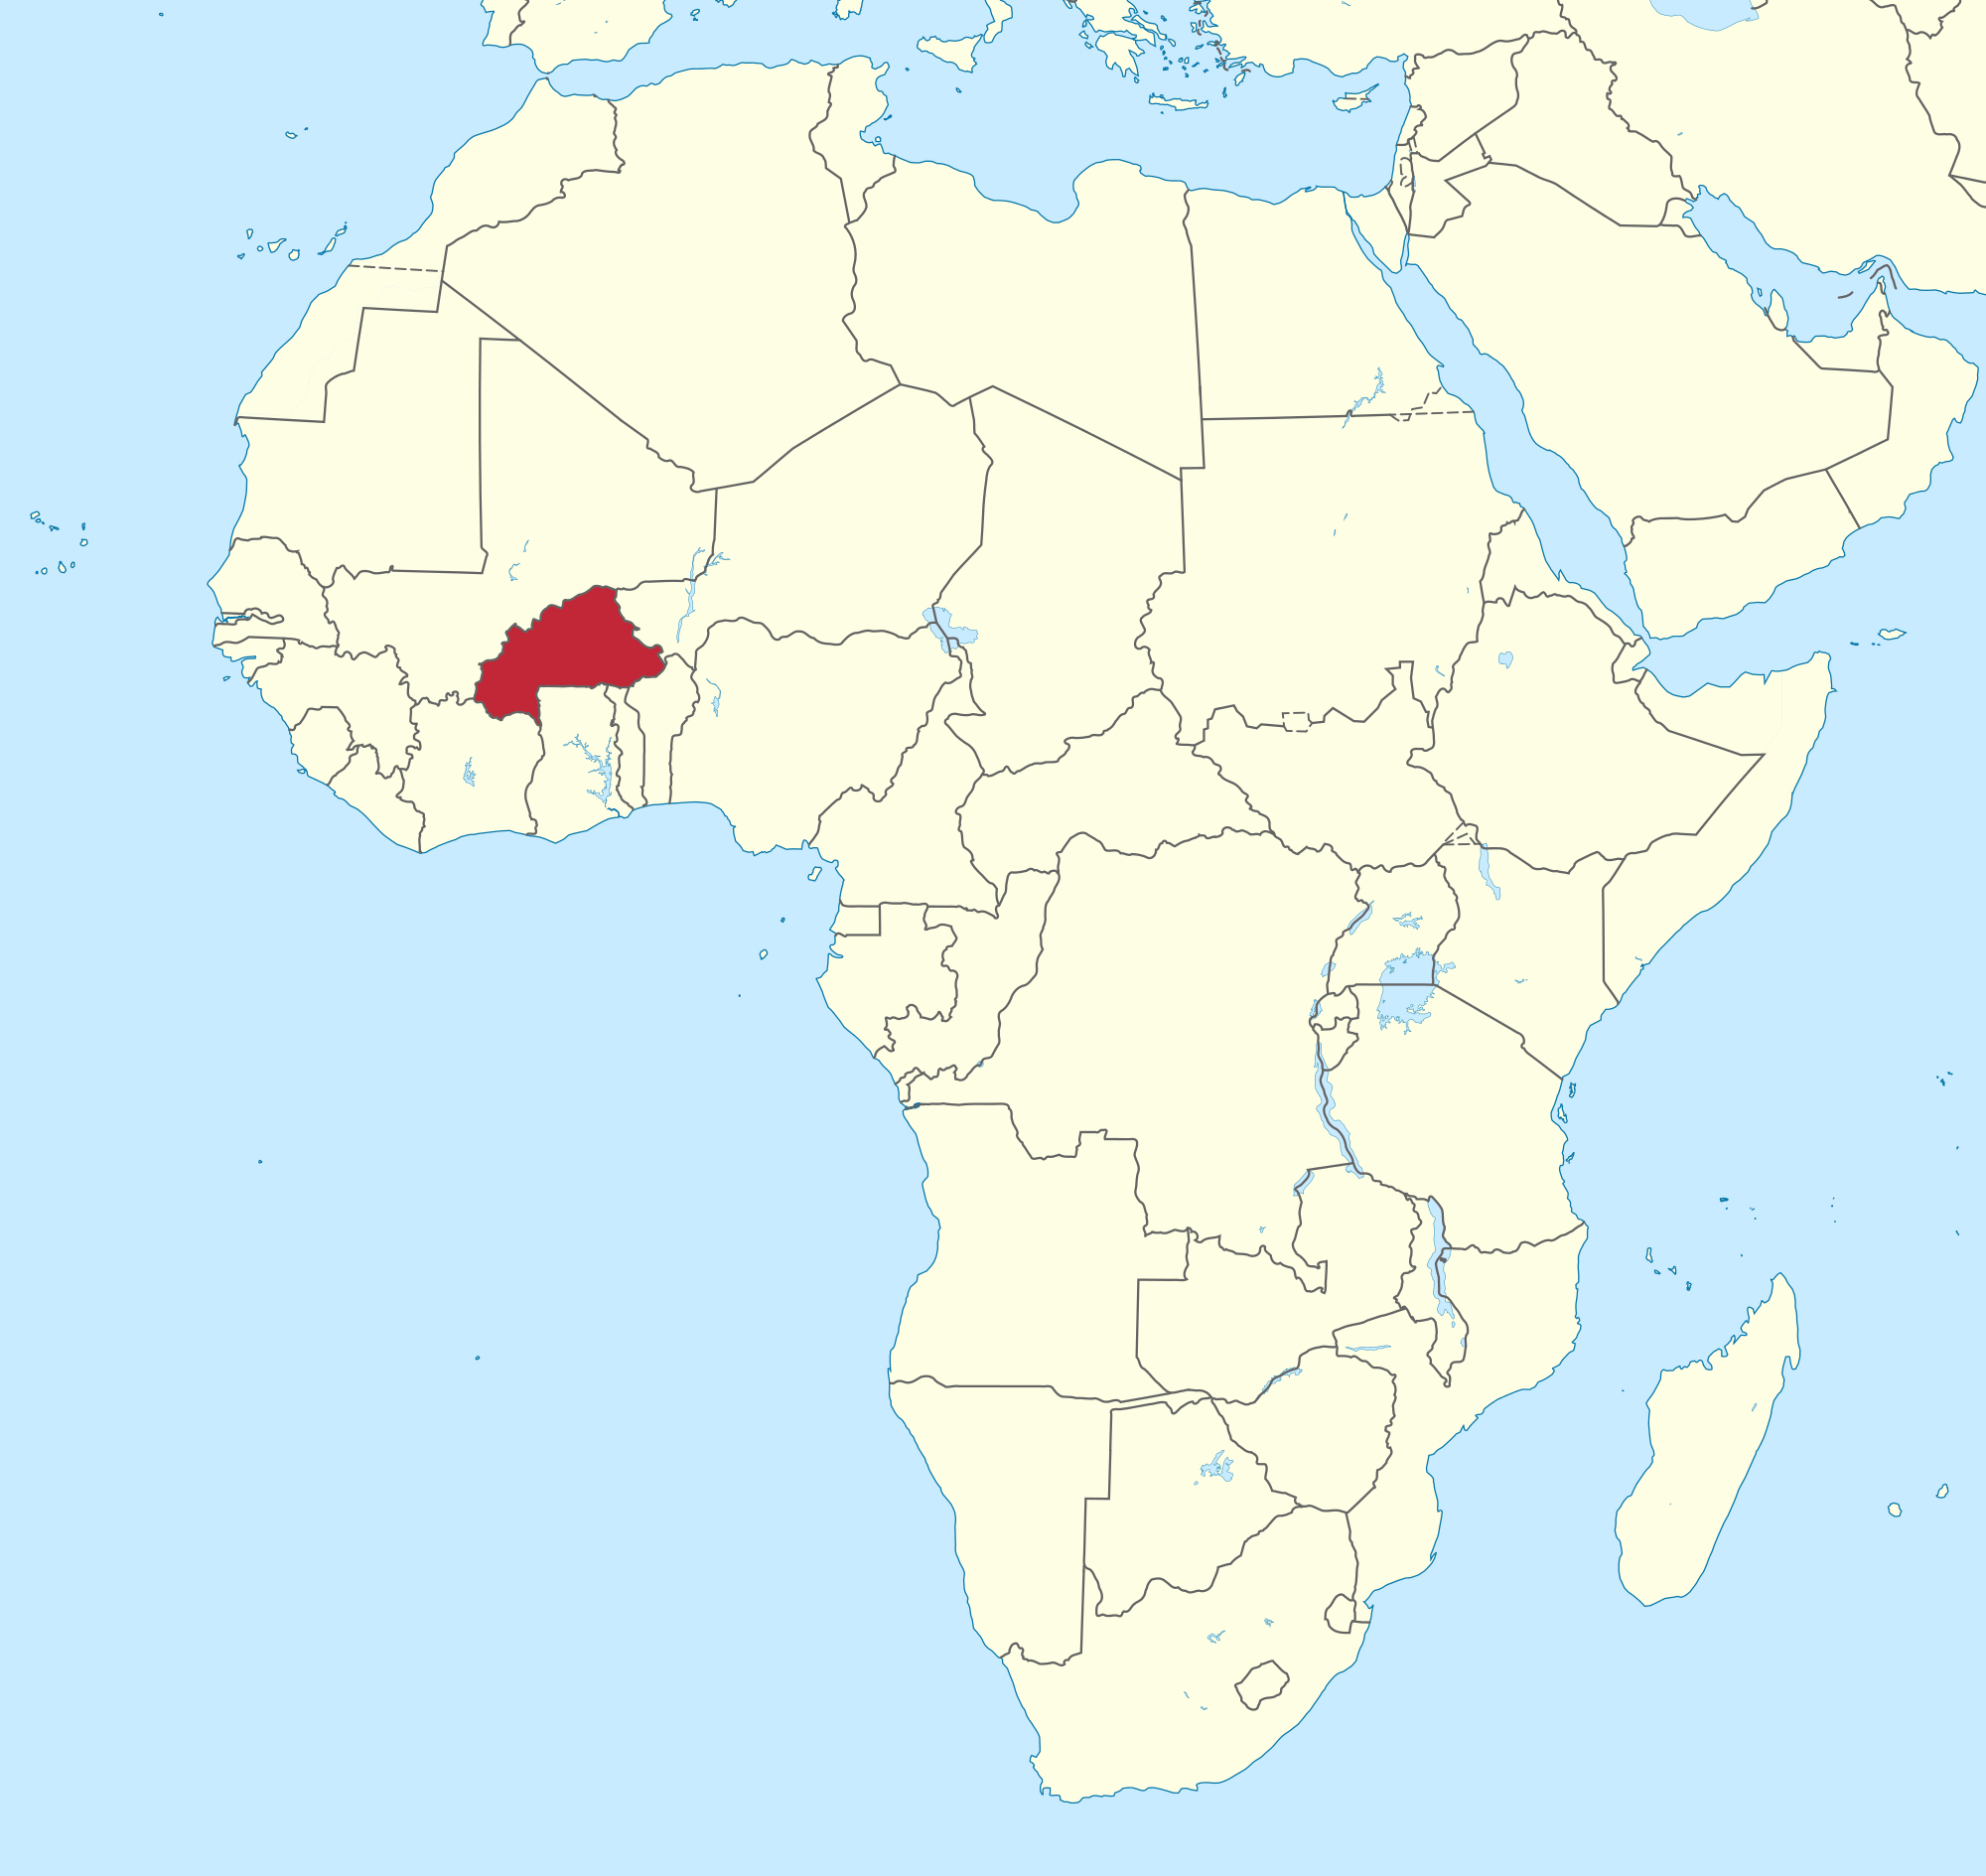 PRINT Burkina Faso, red, located in western Africa. Map courtesy